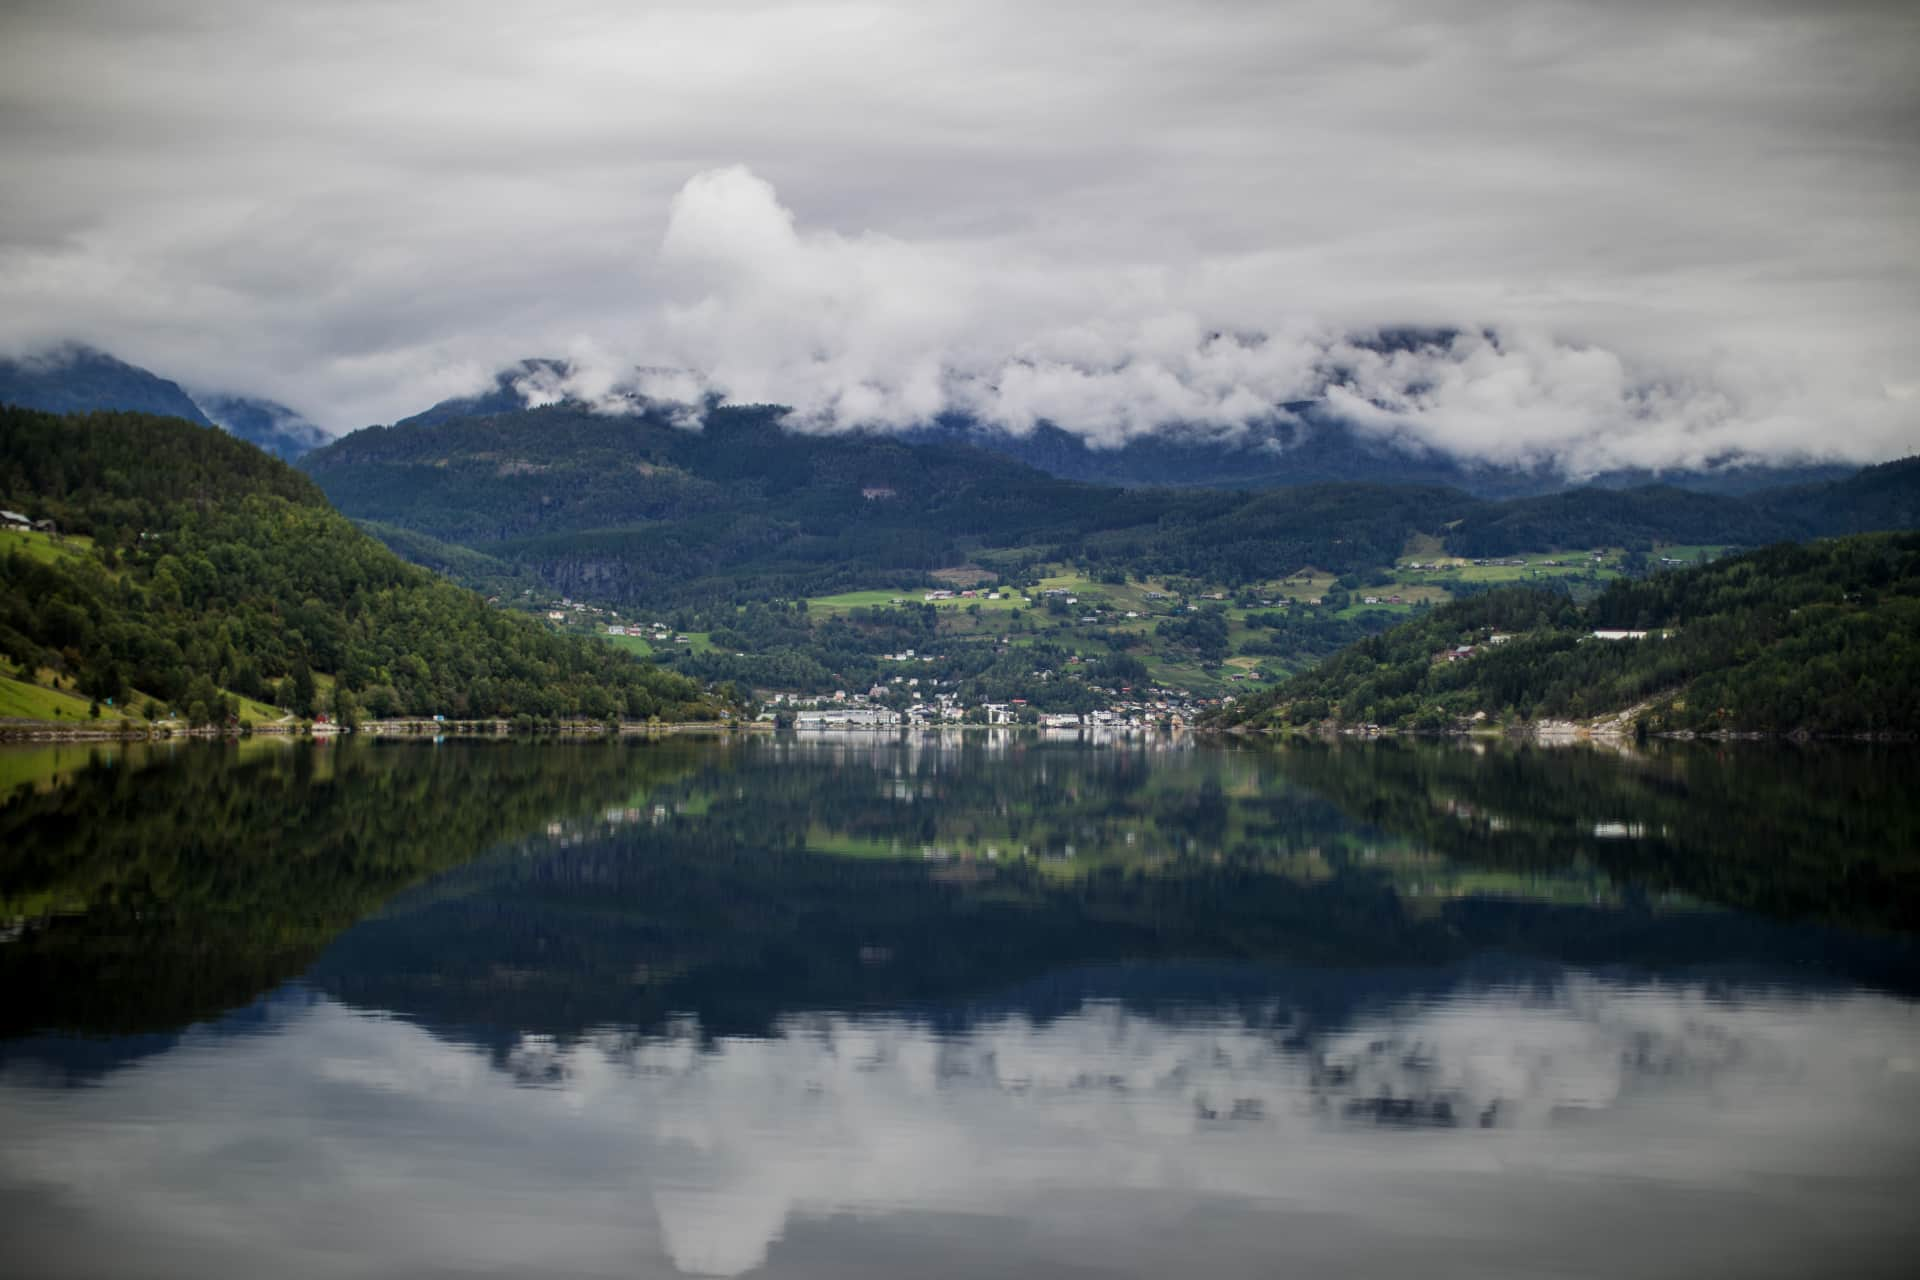 A water reflection of a cloudy landscape in the Hardangerfjord.